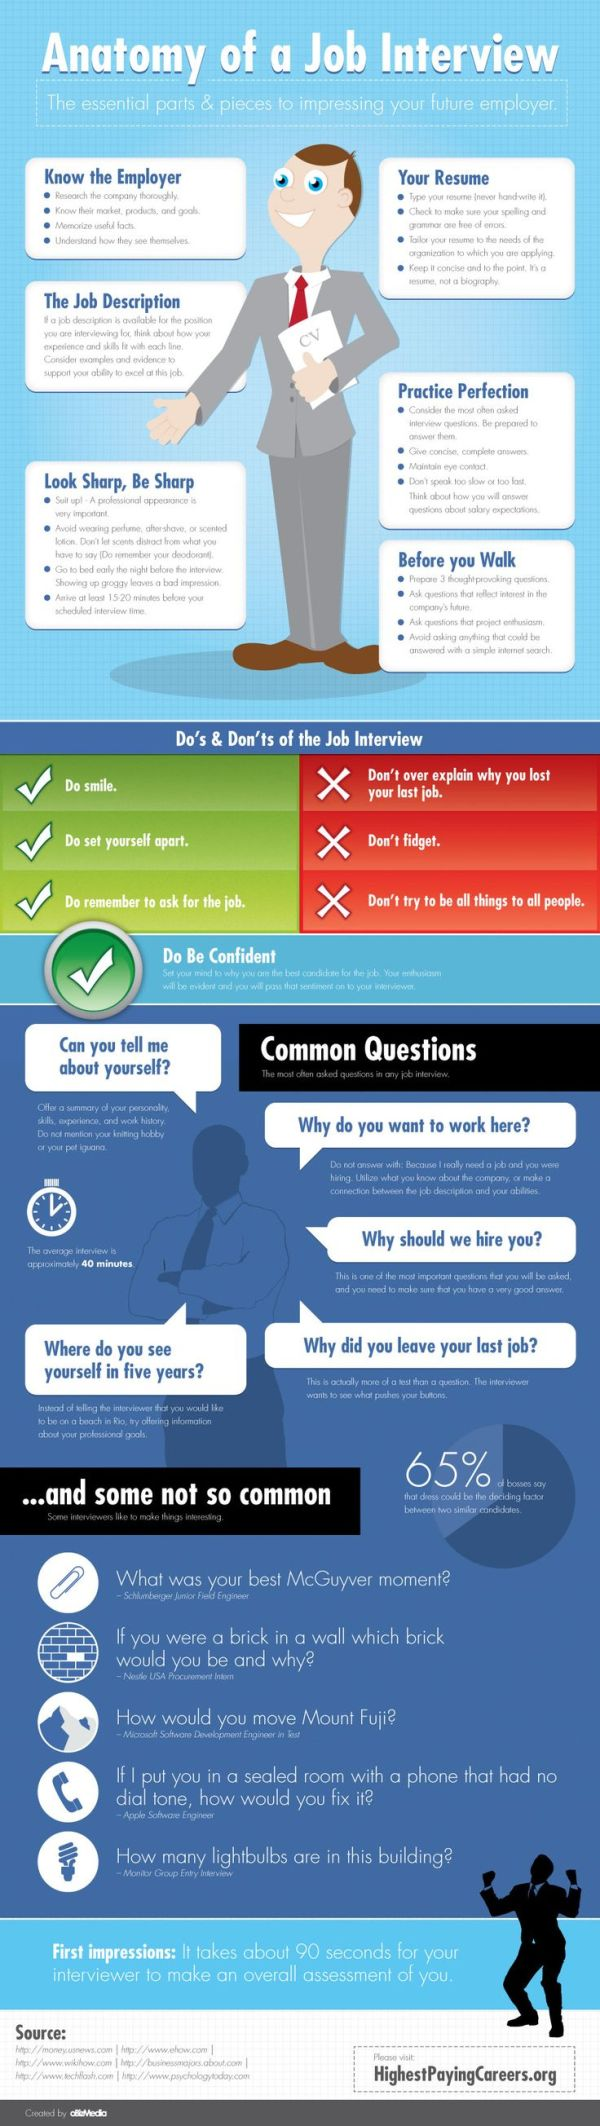 471 best images about Recruiting on Pinterest | Technology ...